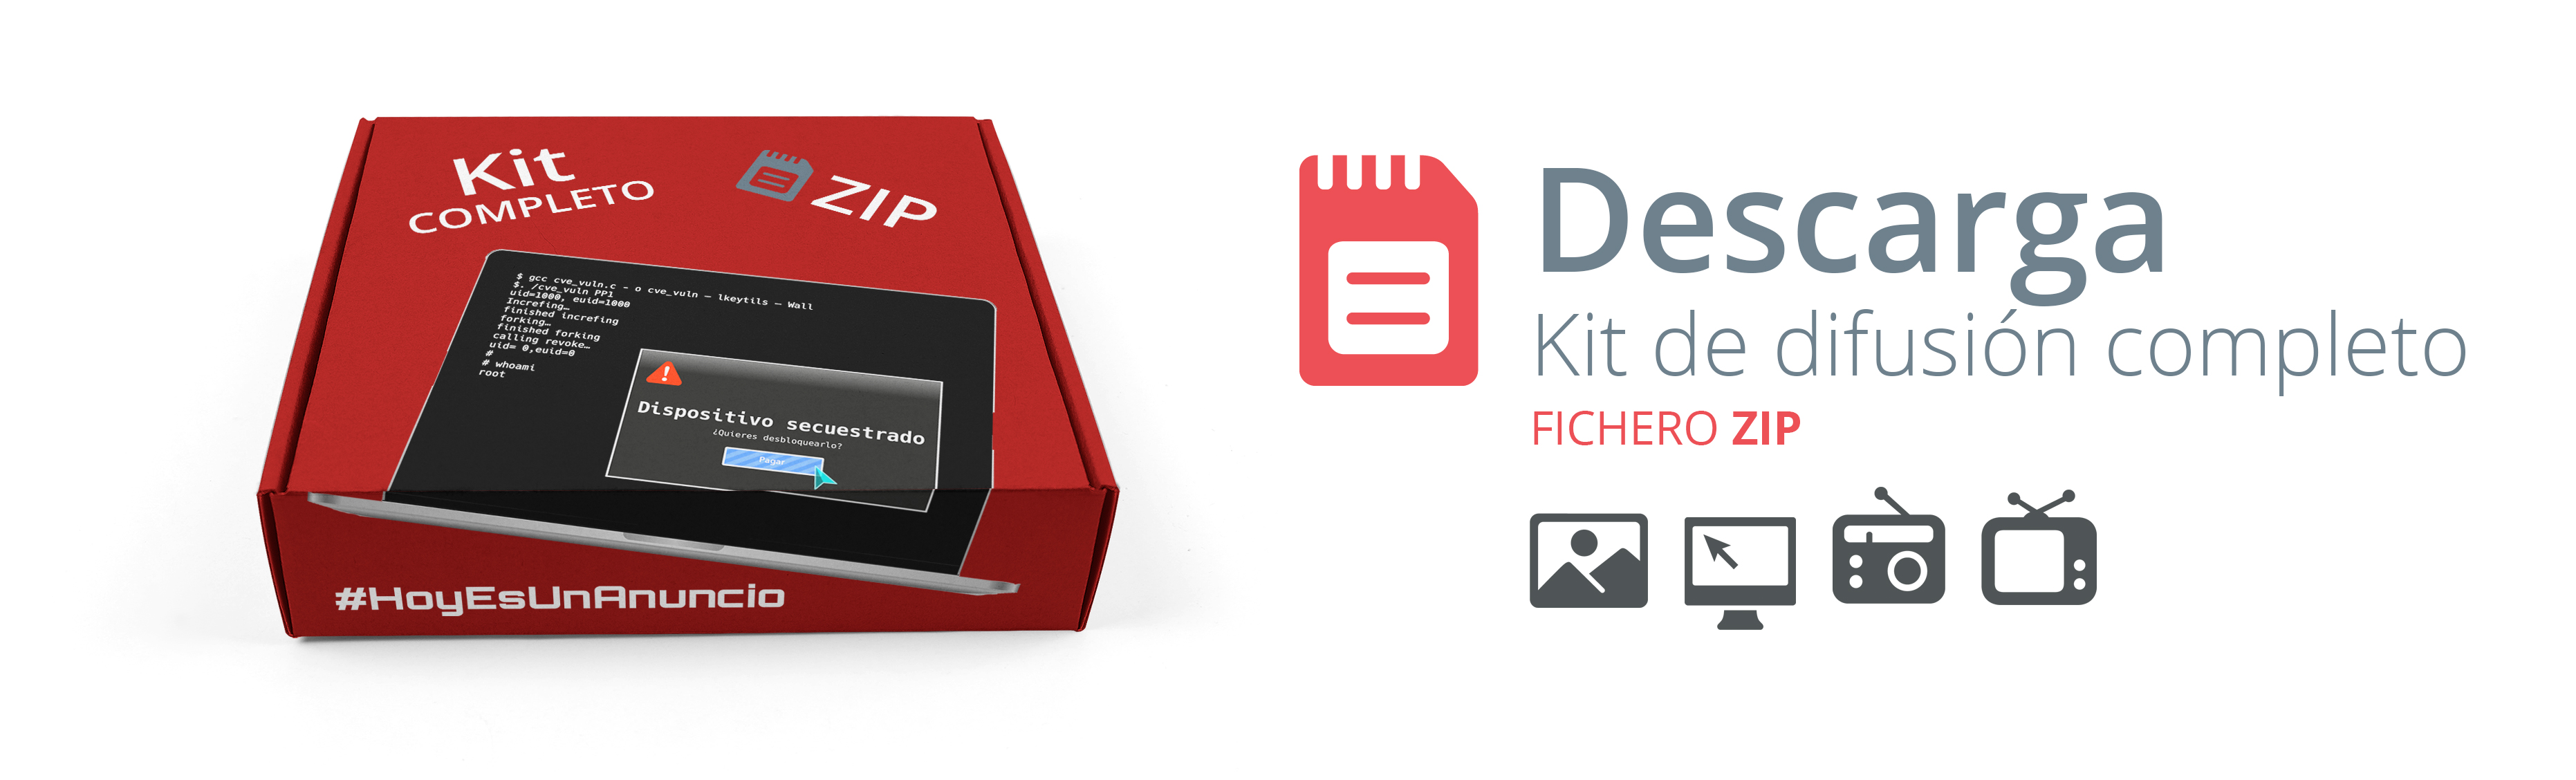 Descarga Kit de difusión completo. Fichero ZIP.